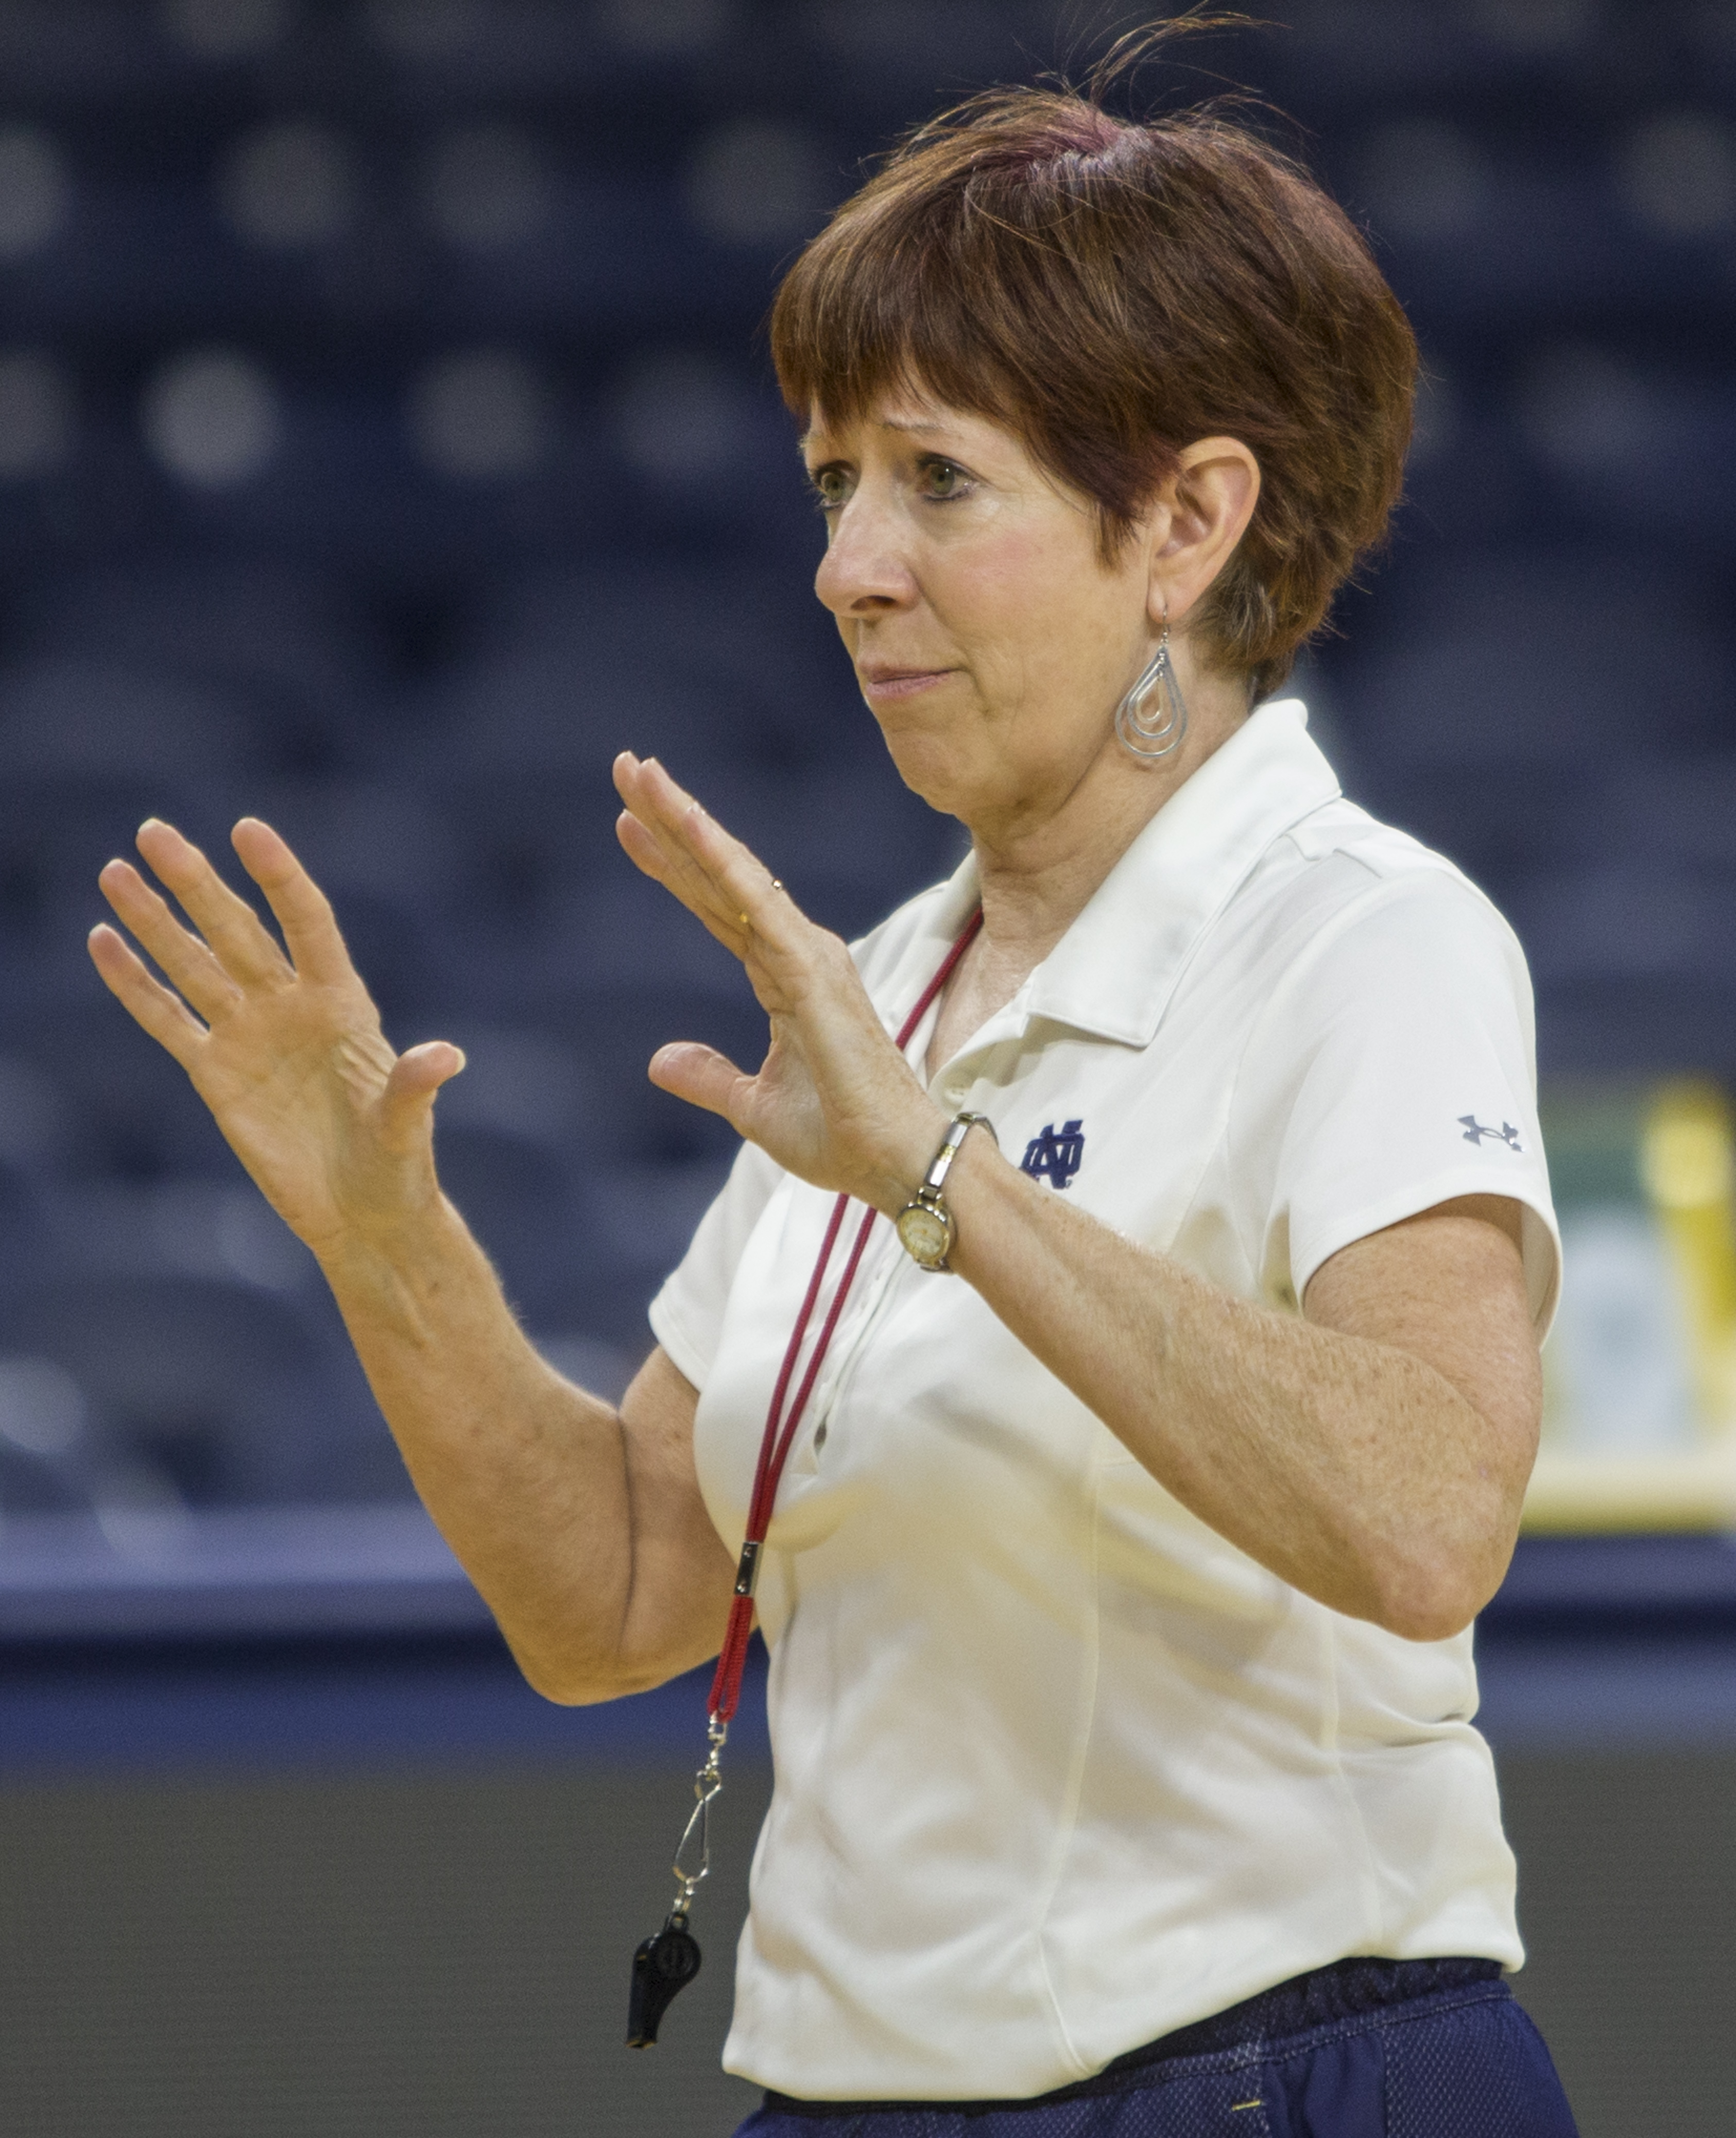 Notre Dame women's basketball head coach Muffet McGraw runs an NCAA college basketball practice during Media Day, Monday, Oct. 12, 2015, in South Bend, Ind. (Robert Franklin/South Bend Tribune via AP) MANDATORY CREDIT